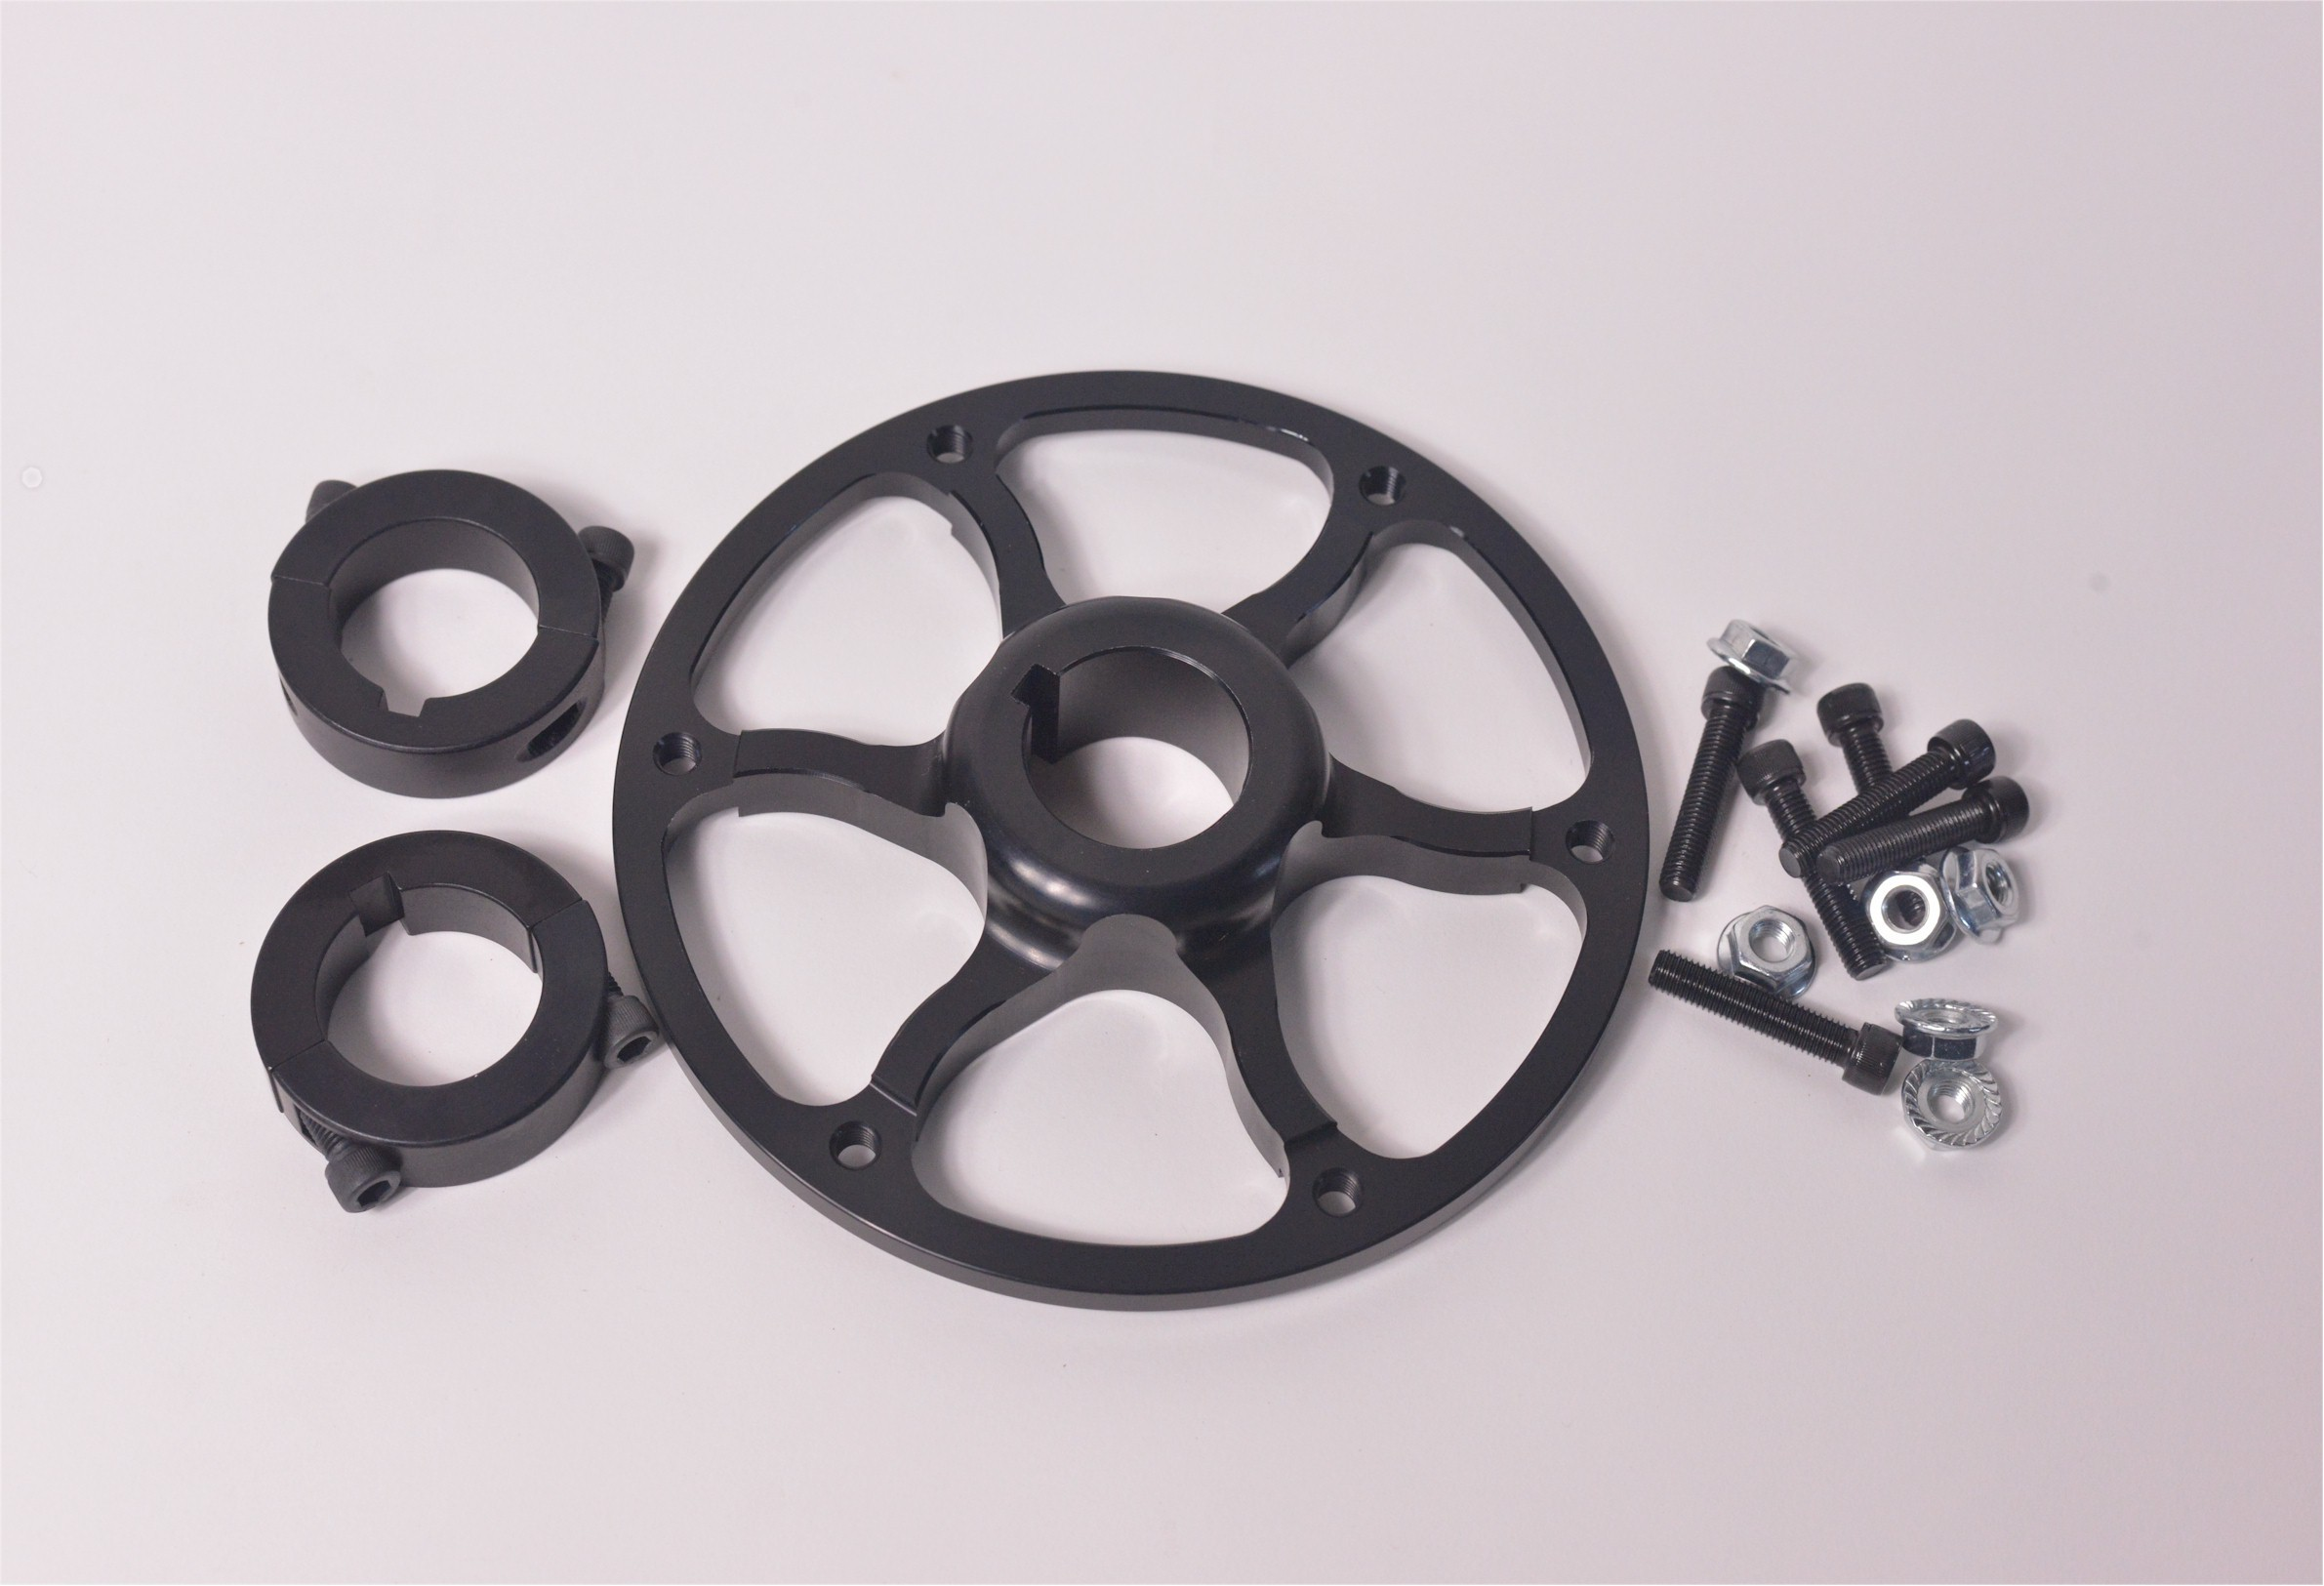 floating gear hub - Product Image